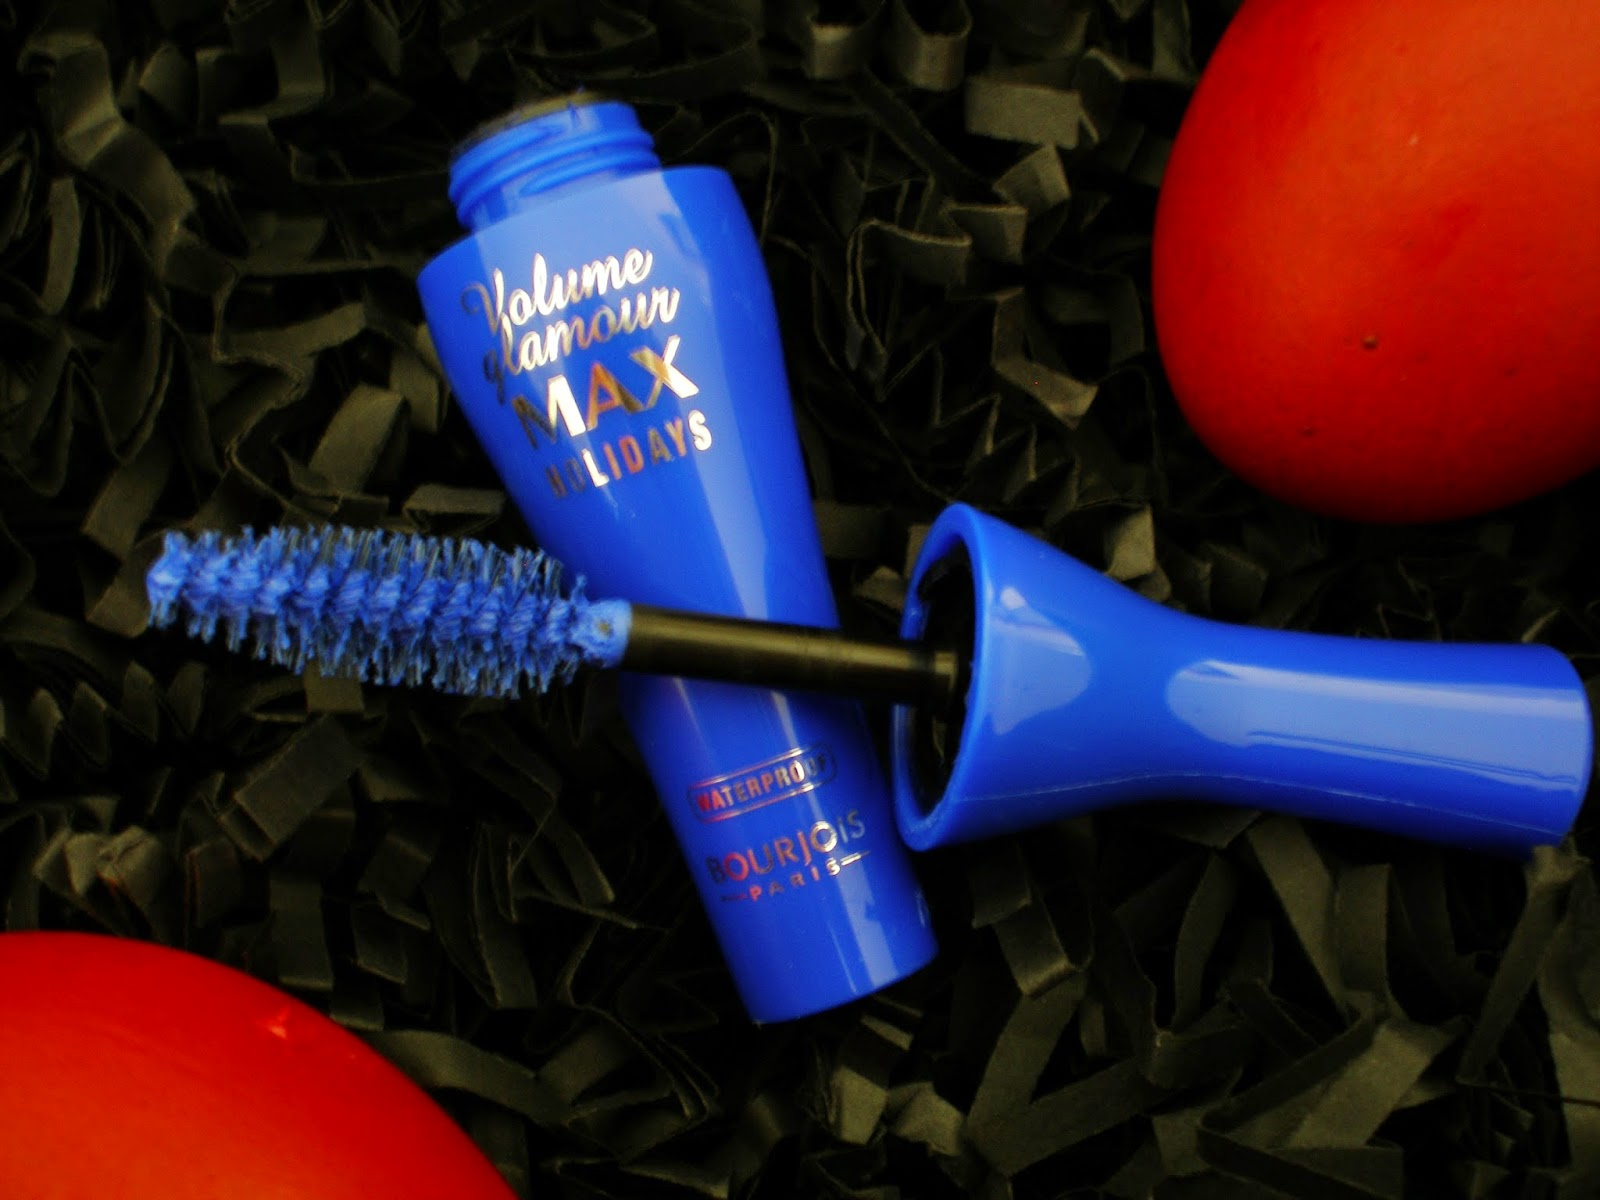 Bourjois Volume Glamour Max Holidays mini mascara in Electric Blue